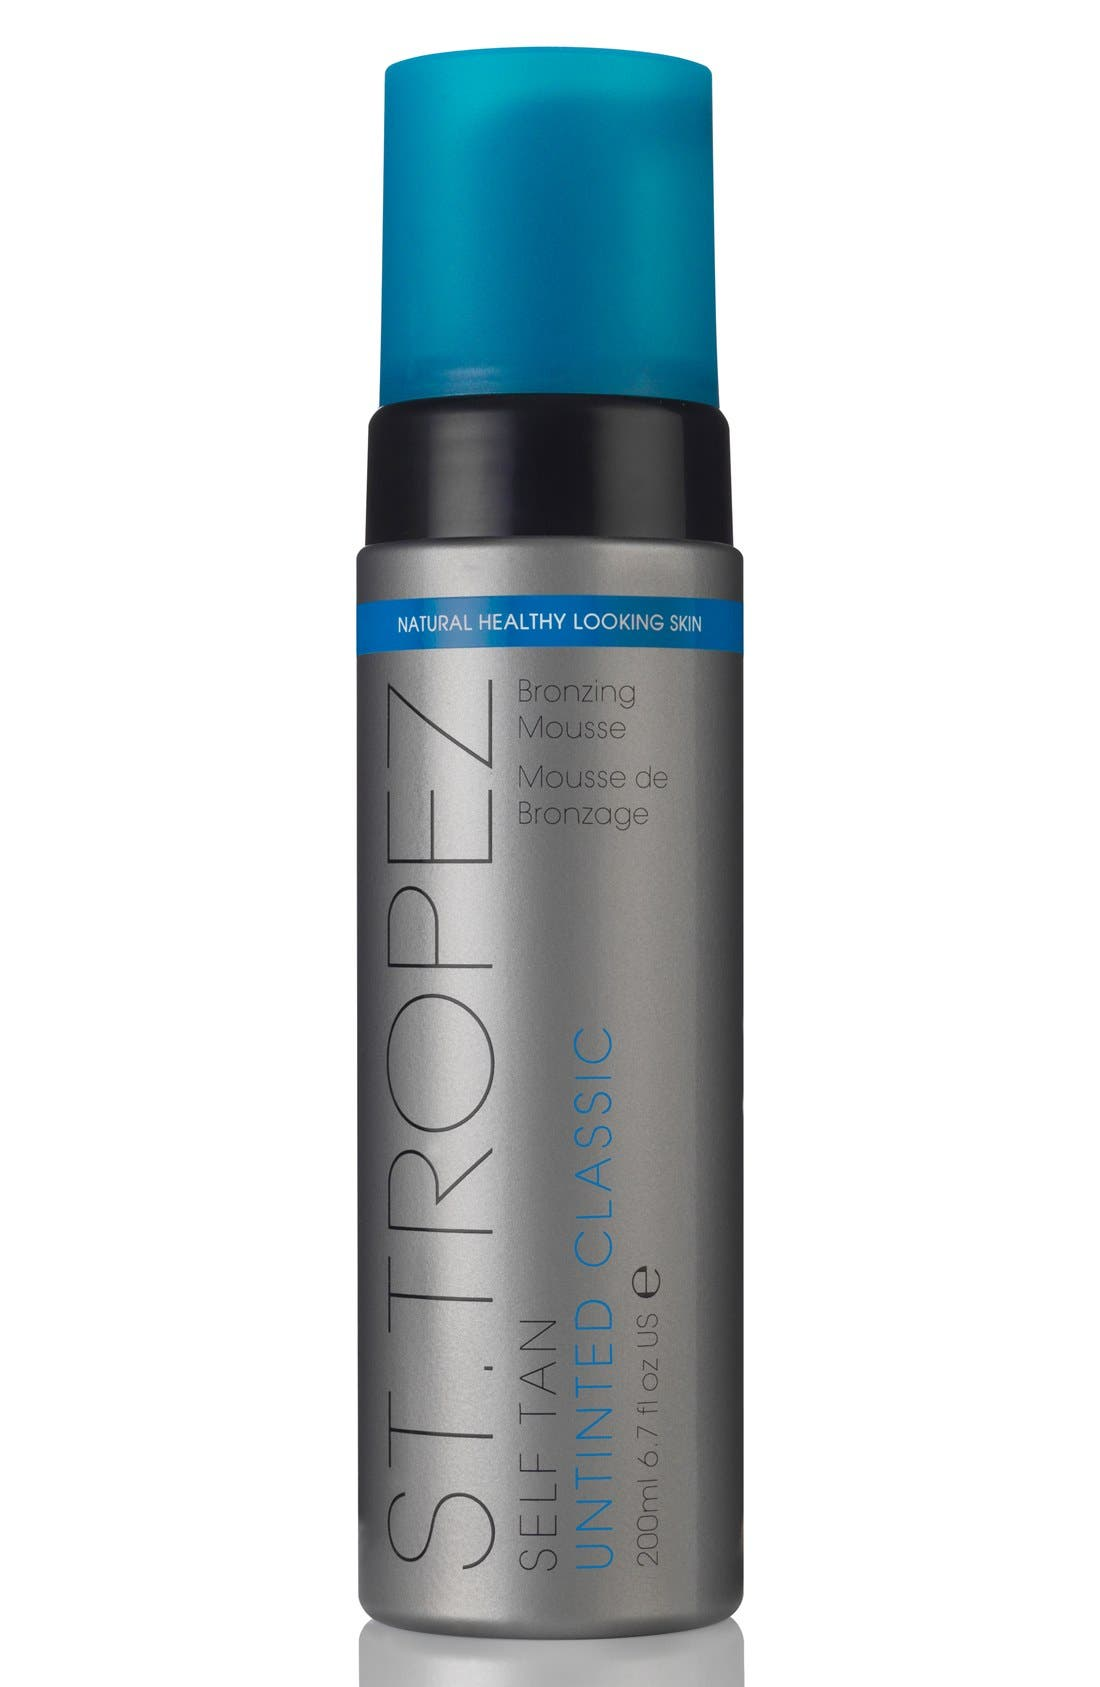 St. Tropez 'Self Tan' Untinted Classic Bronzing Mousse